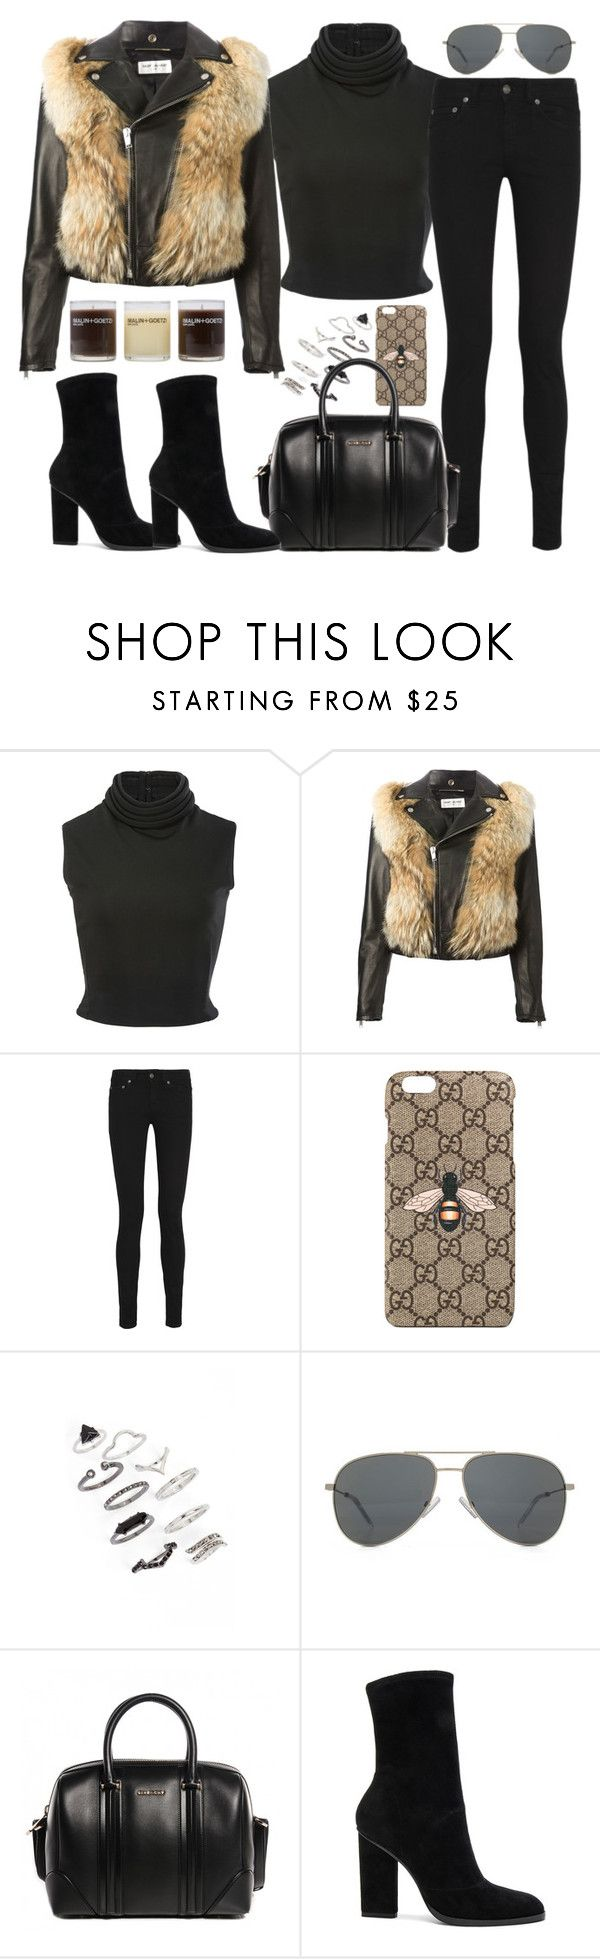 """Untitled #2733"" by briarachele on Polyvore featuring Brandon Maxwell, Yves Saint Laurent, Gucci, Topshop, Givenchy, Alexander Wang and (MALIN+GOETZ)"